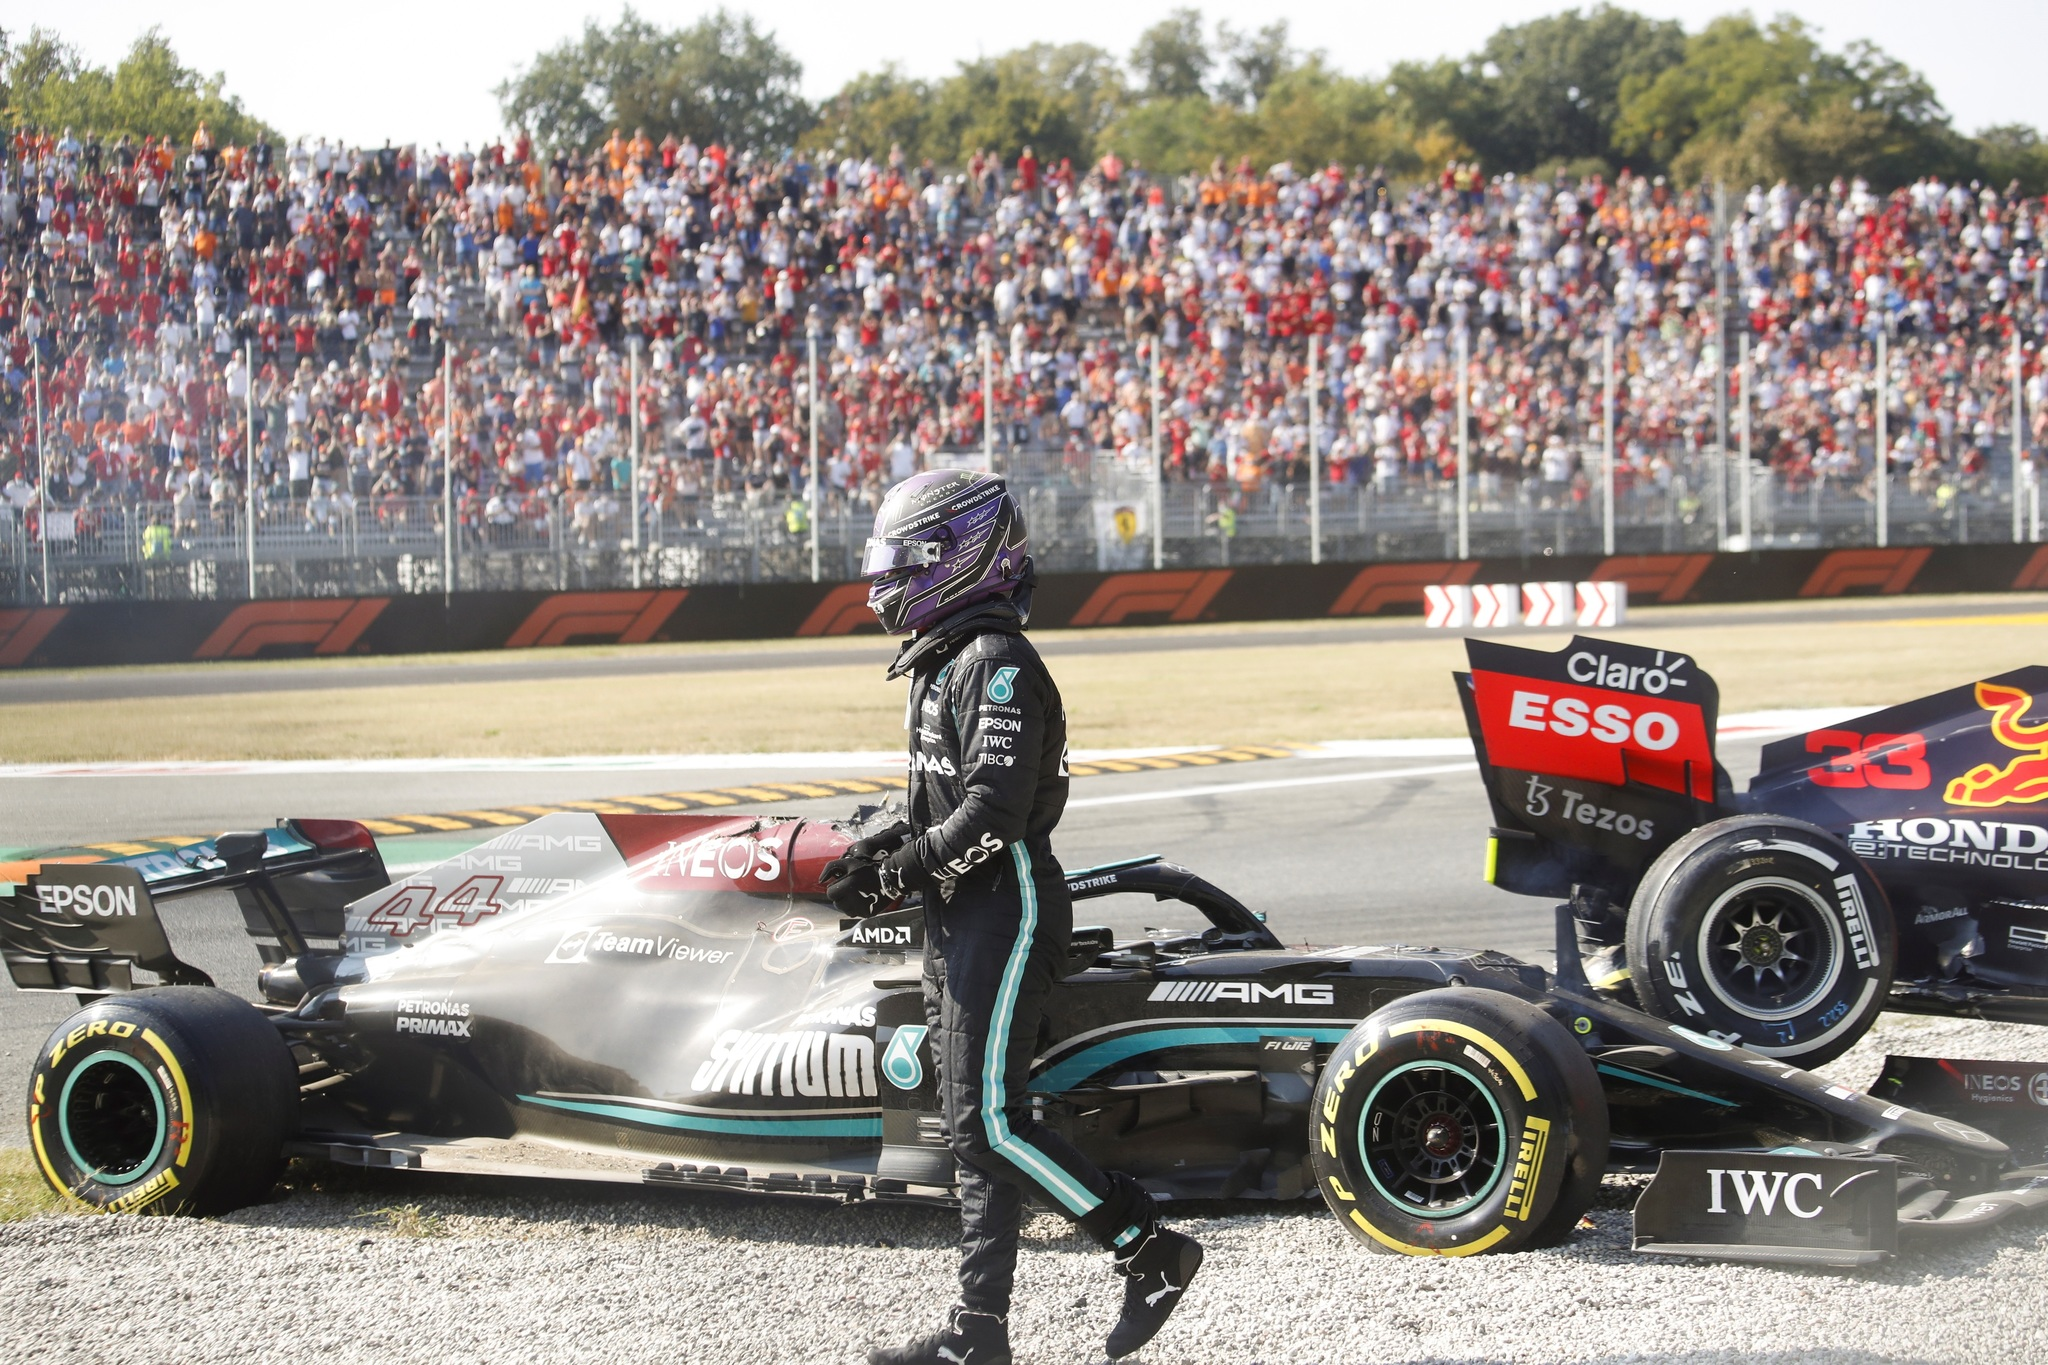 Monza (Italy), 12/09/2021.- British Formula One driver Lewis Hamilton of Mercedes-AMG Petronas walsk away from his car after colliding with Dutch Formula One driver Max lt;HIT gt;Verstappen lt;/HIT gt; of Red Bull Racing during the Formula One Grand Prix of Italy at the Autodromo Nazionale Monza race track in Monza, Italy, 12 September 2021. (Fórmula Uno, Italia) EFE/EPA/MATTEO BAZZI